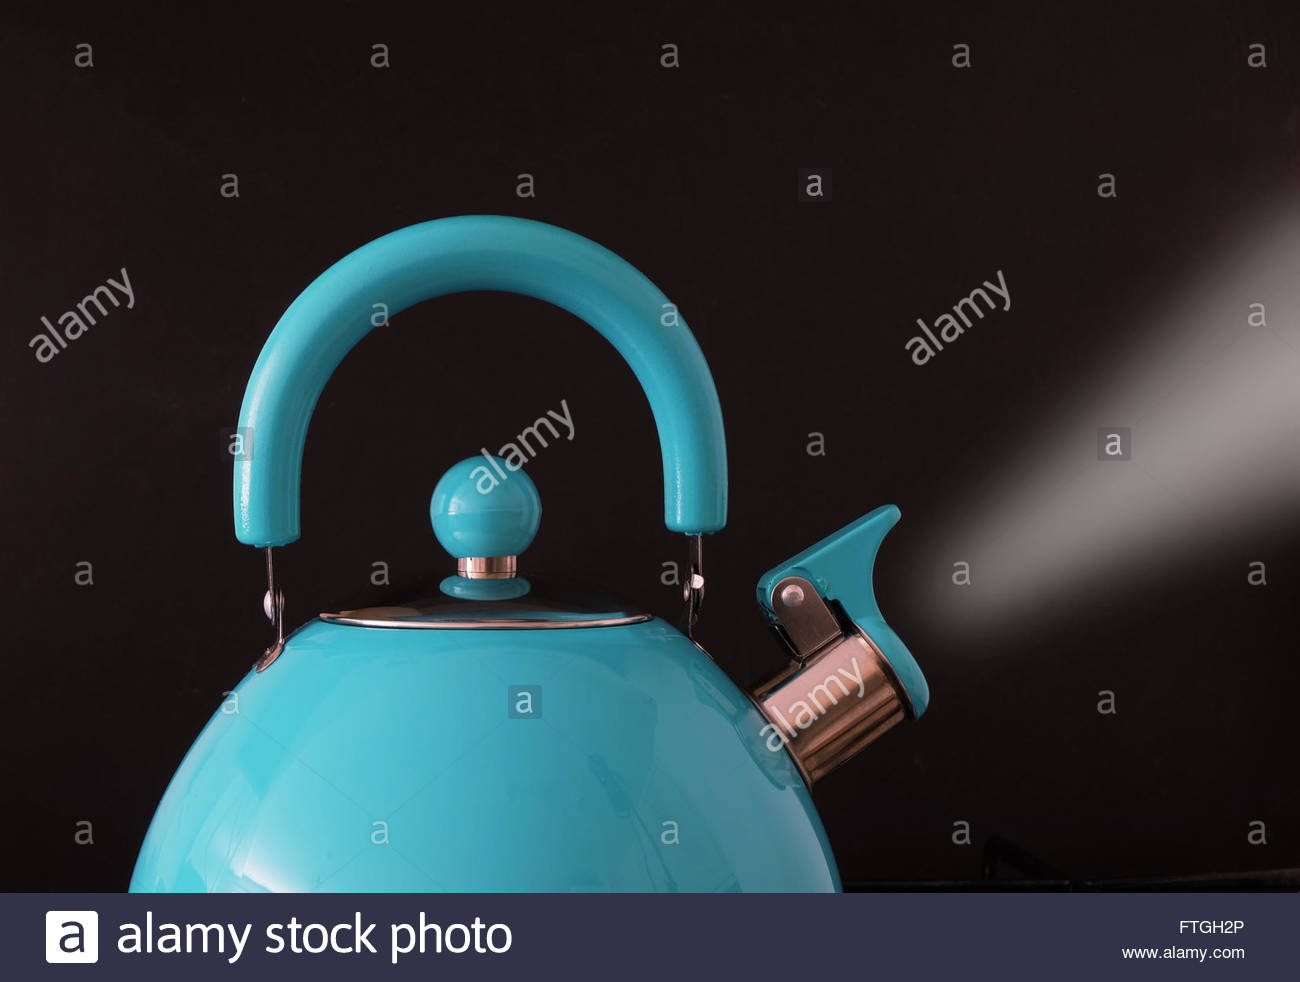 Closeup of boiling kettle steam coming from the spout against black background Stock Photo